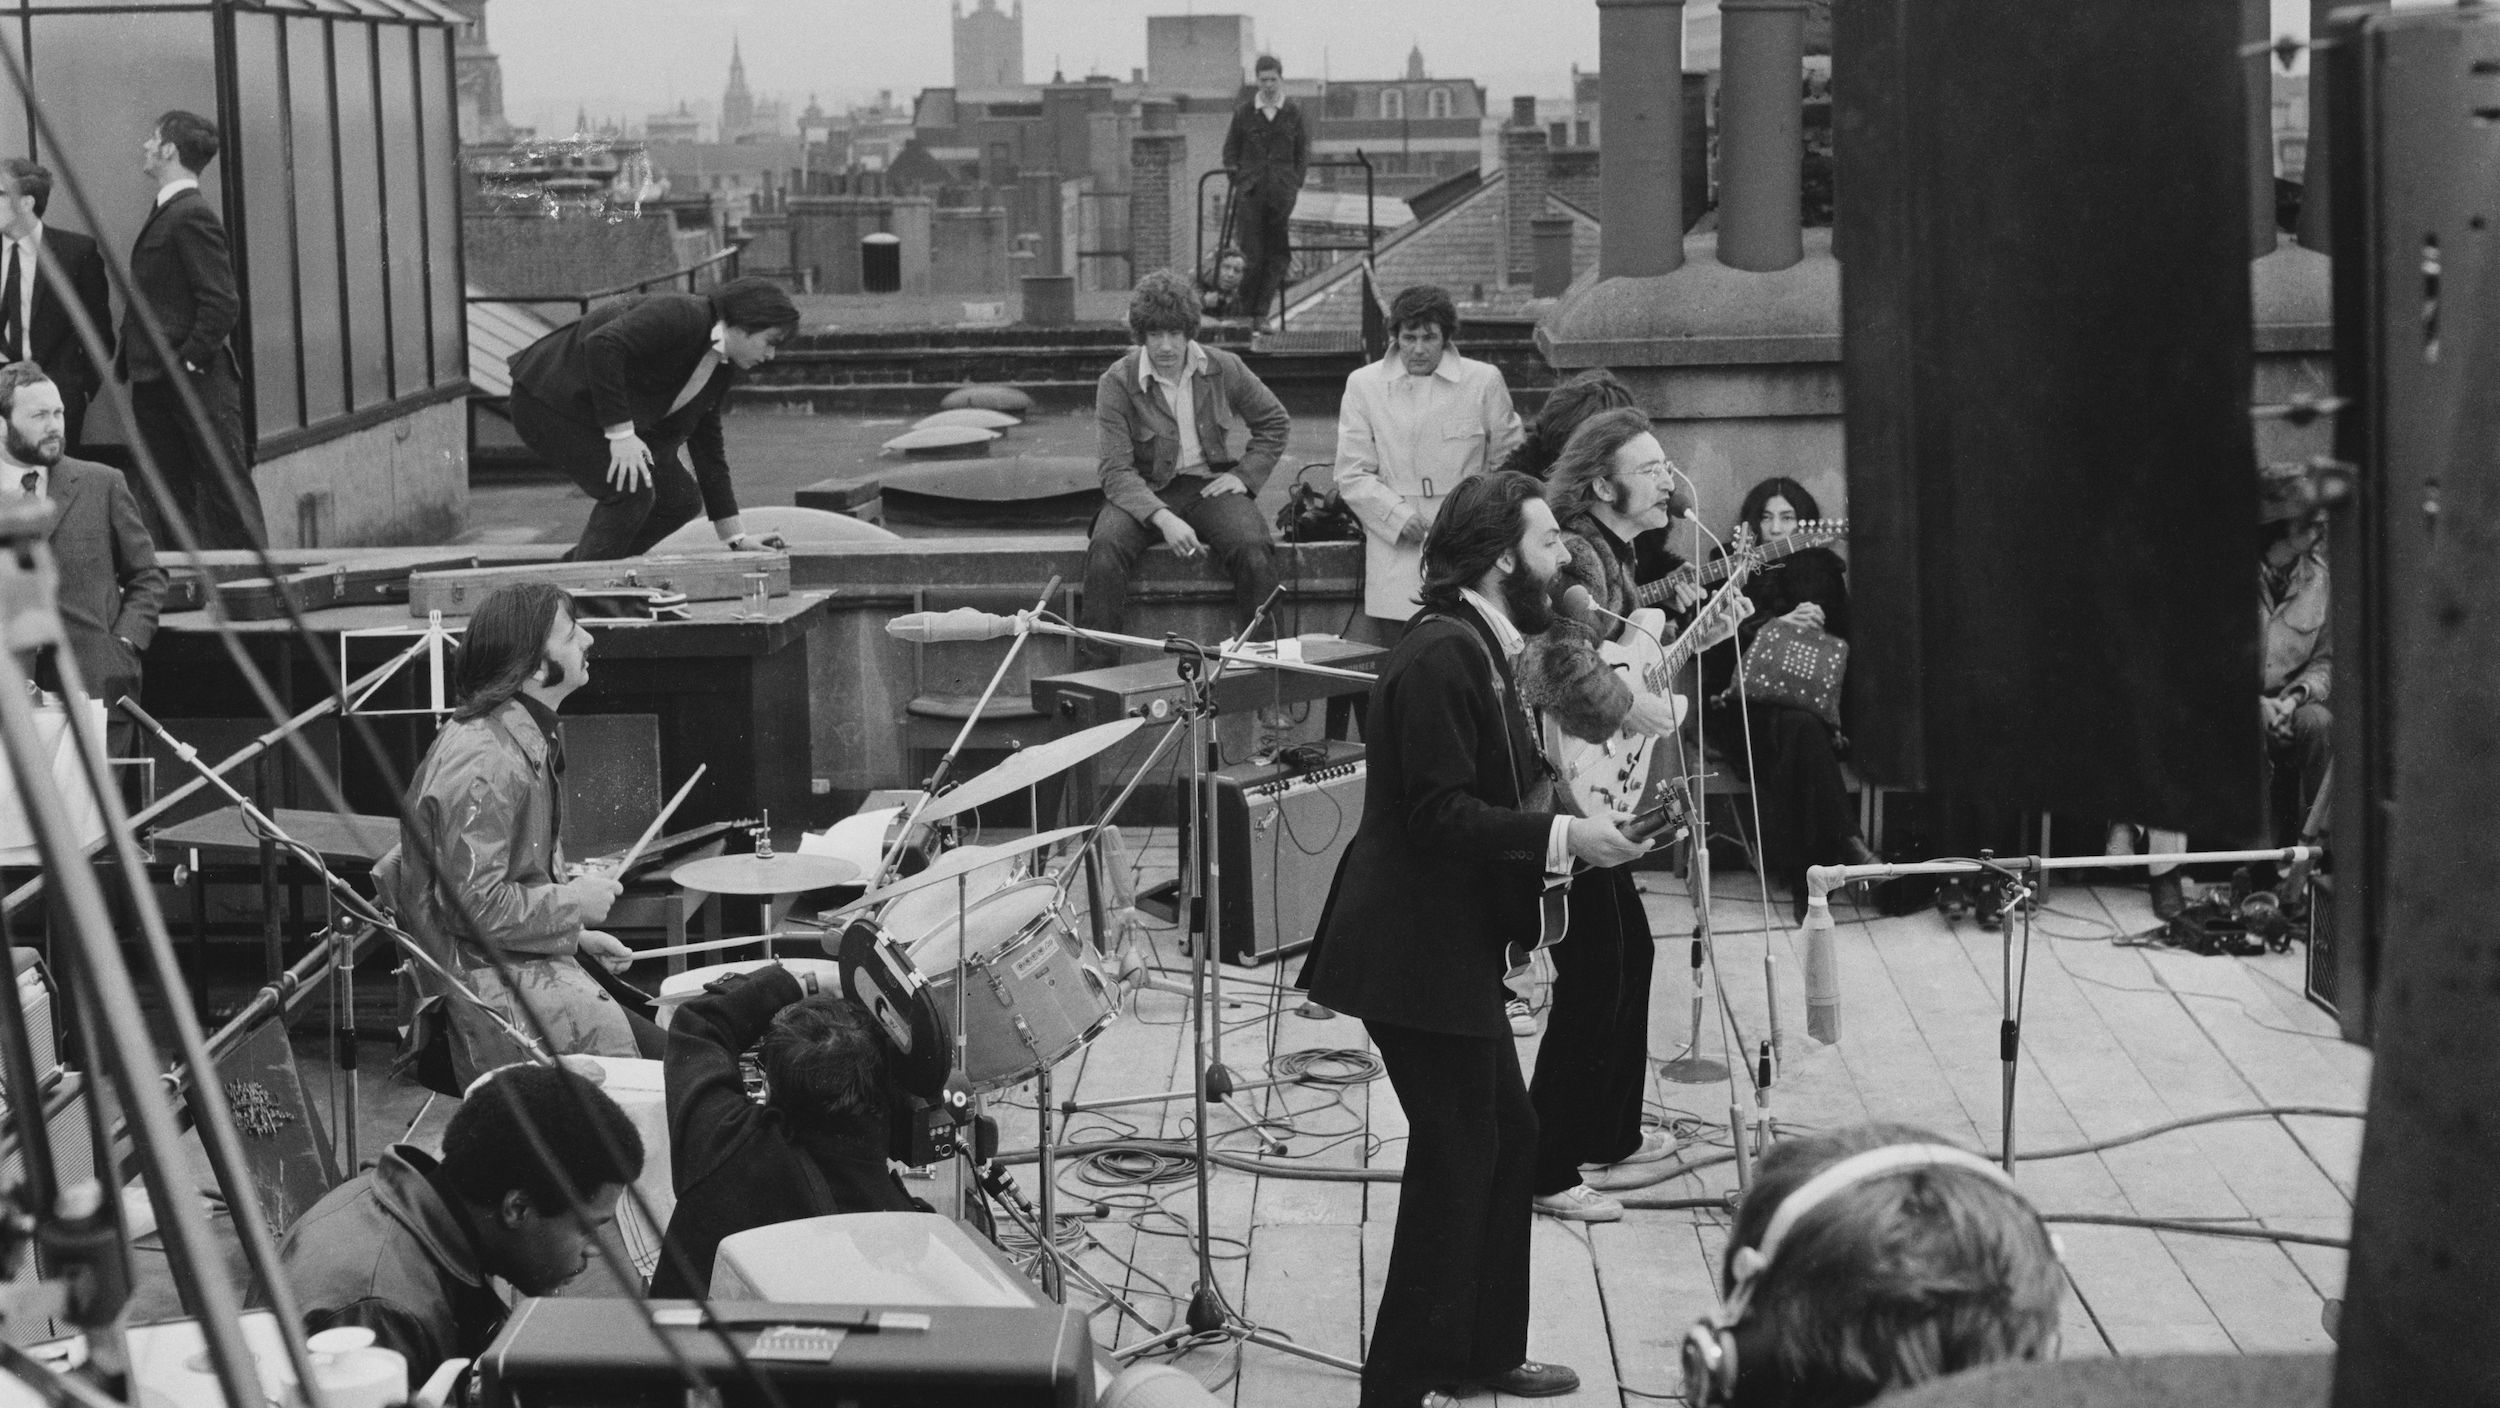 10 Facts About The Beatles's 1969 Rooftop Concert